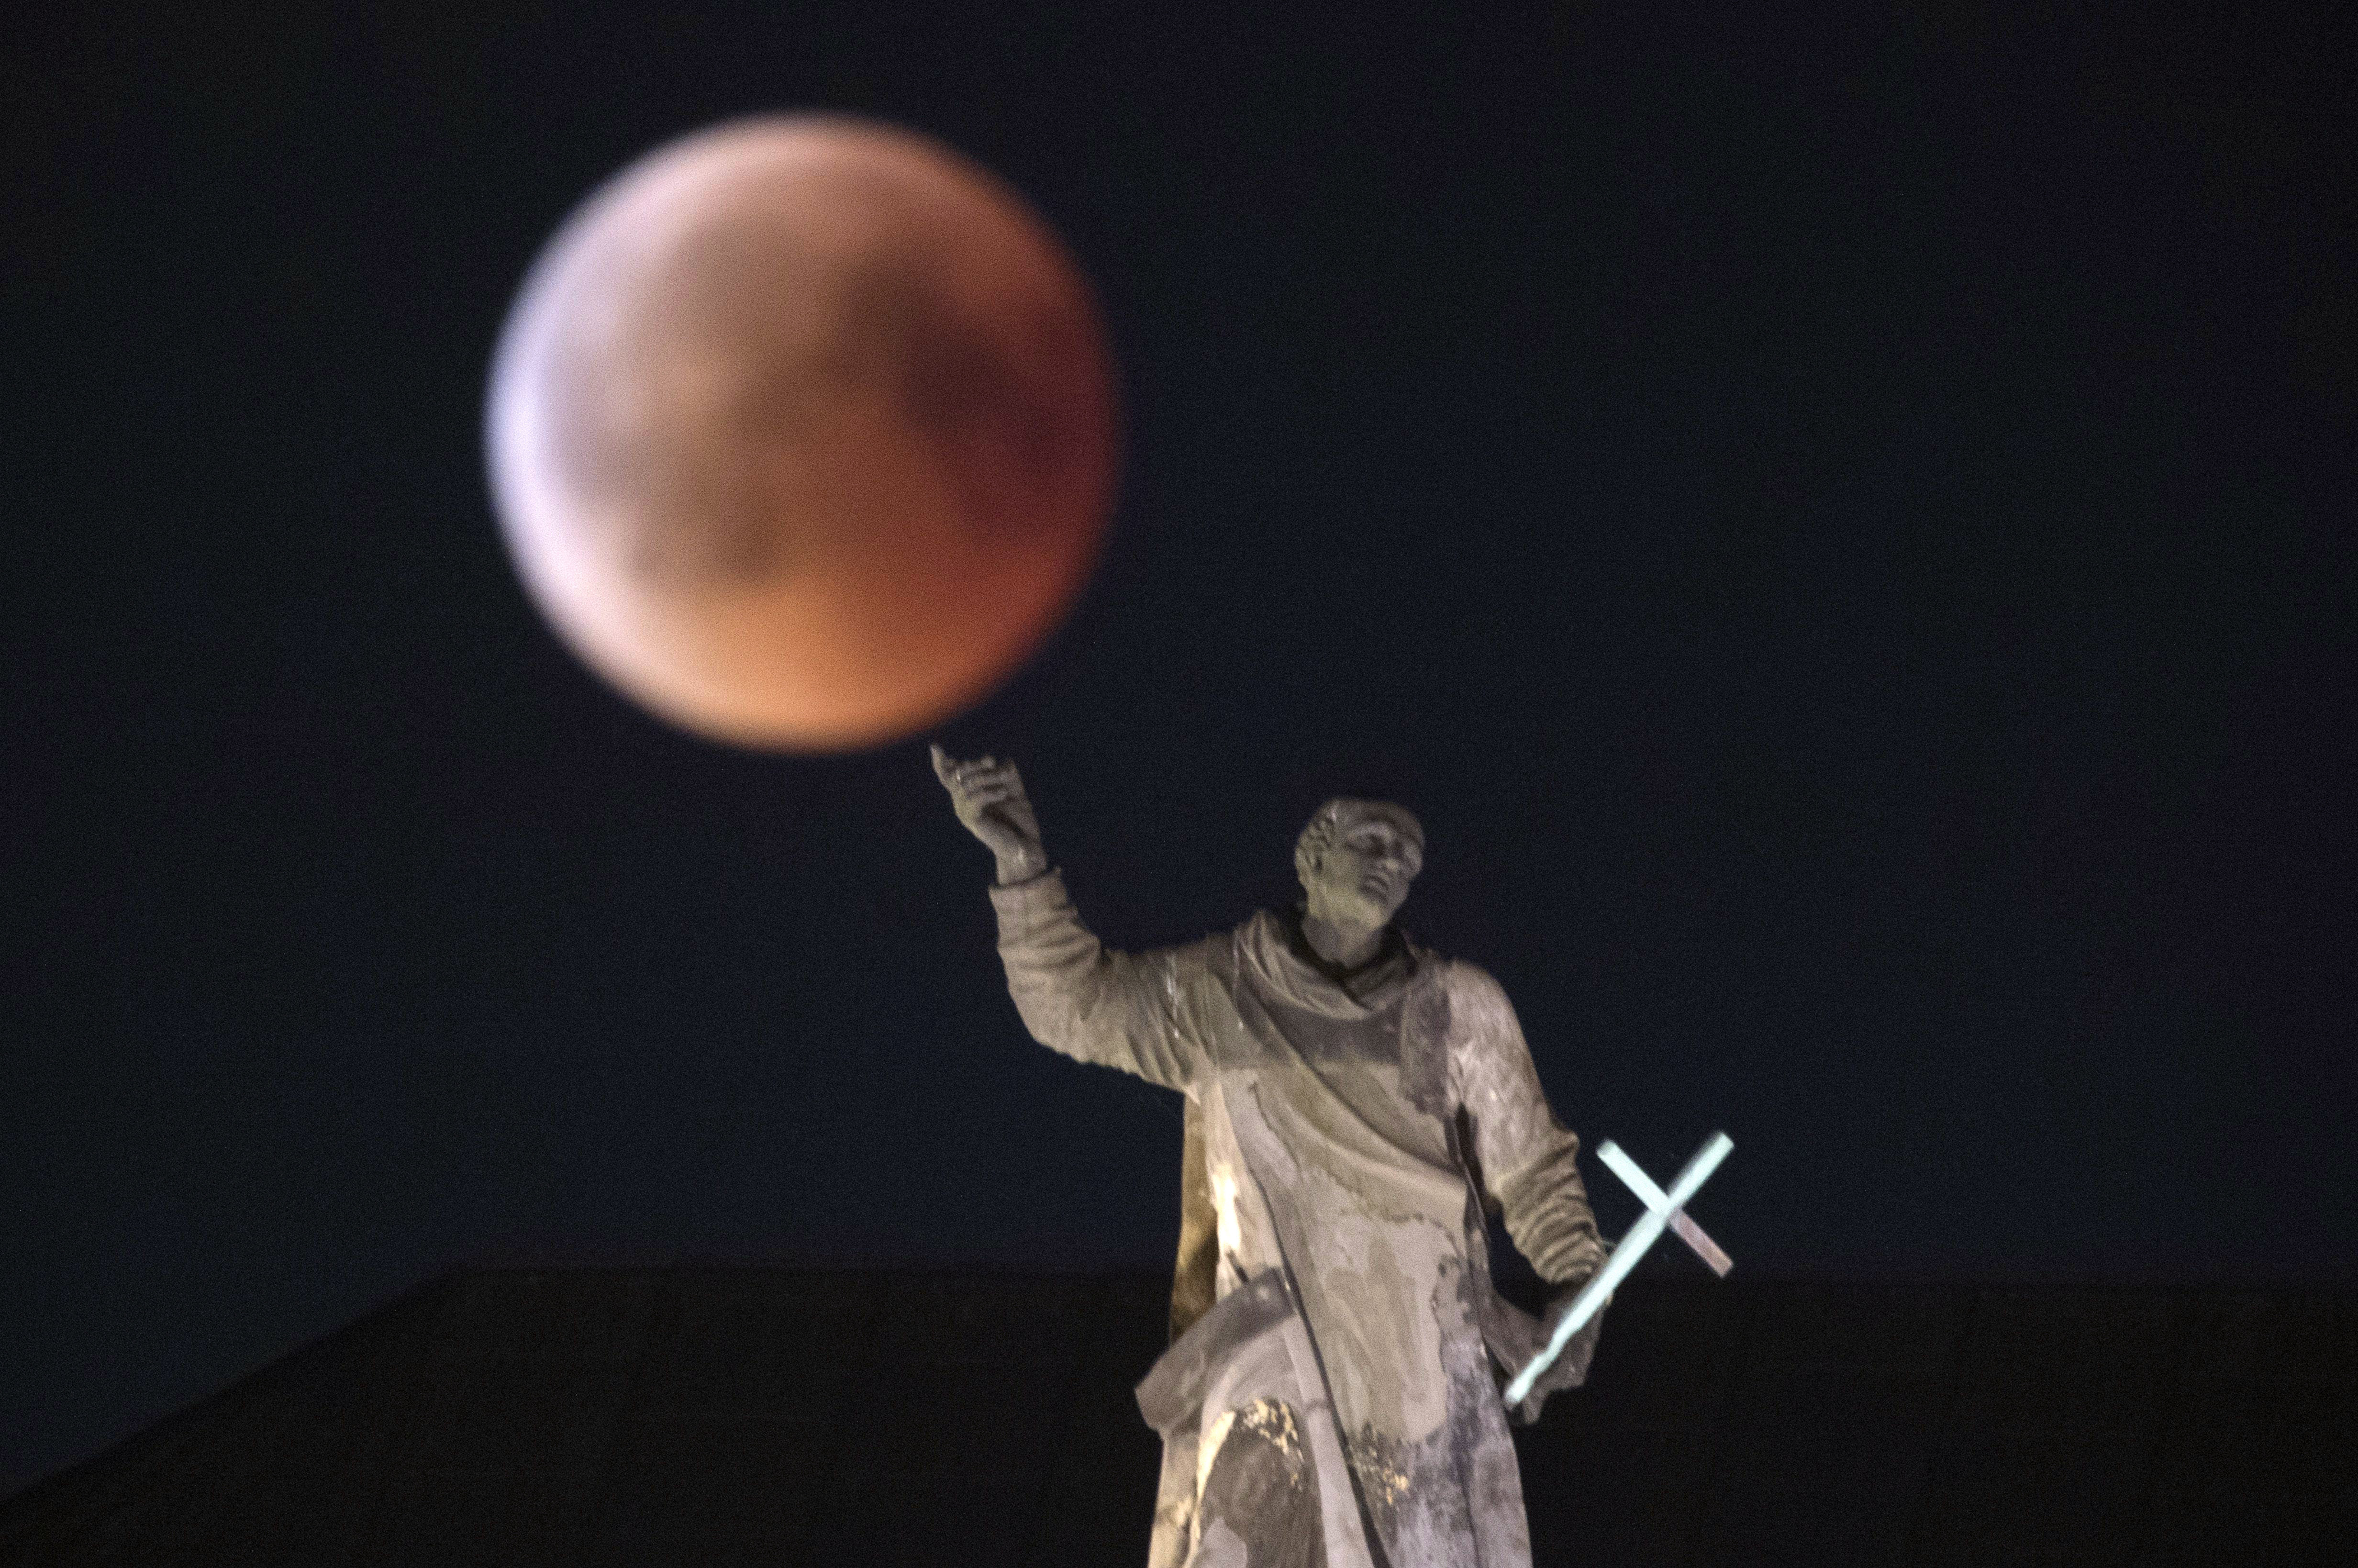 The moon turns red during a total lunar eclipse, as seen from Dresden, Germany, Friday, July 27, 2018. Skywatchers around much of the world are looking forward to a complete lunar eclipse that will be the longest this century.